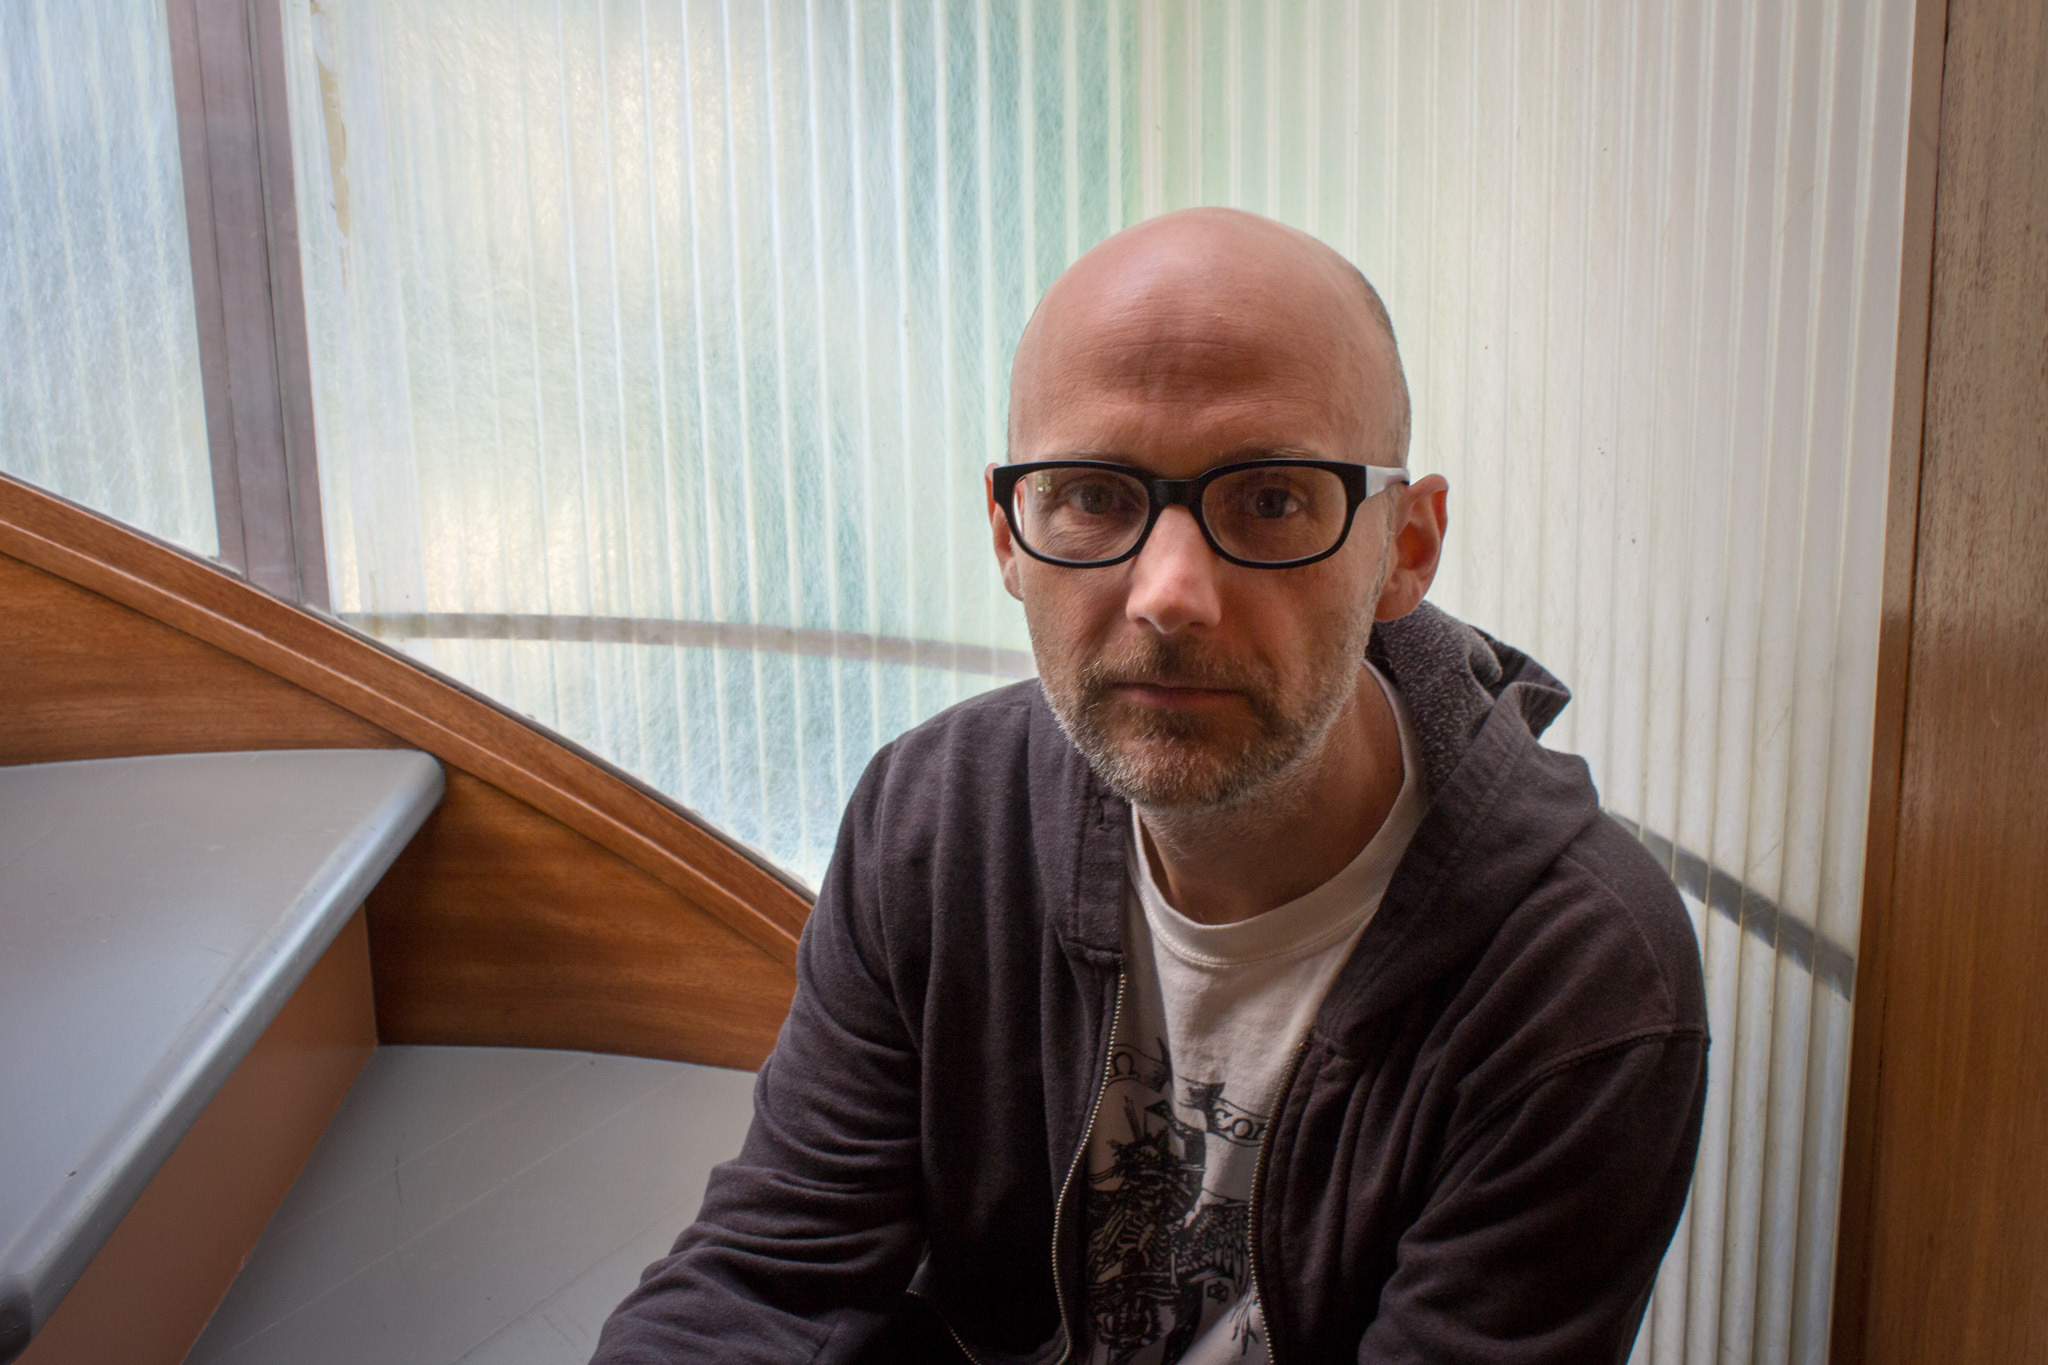 Time Out with musician and architecture blogger Moby